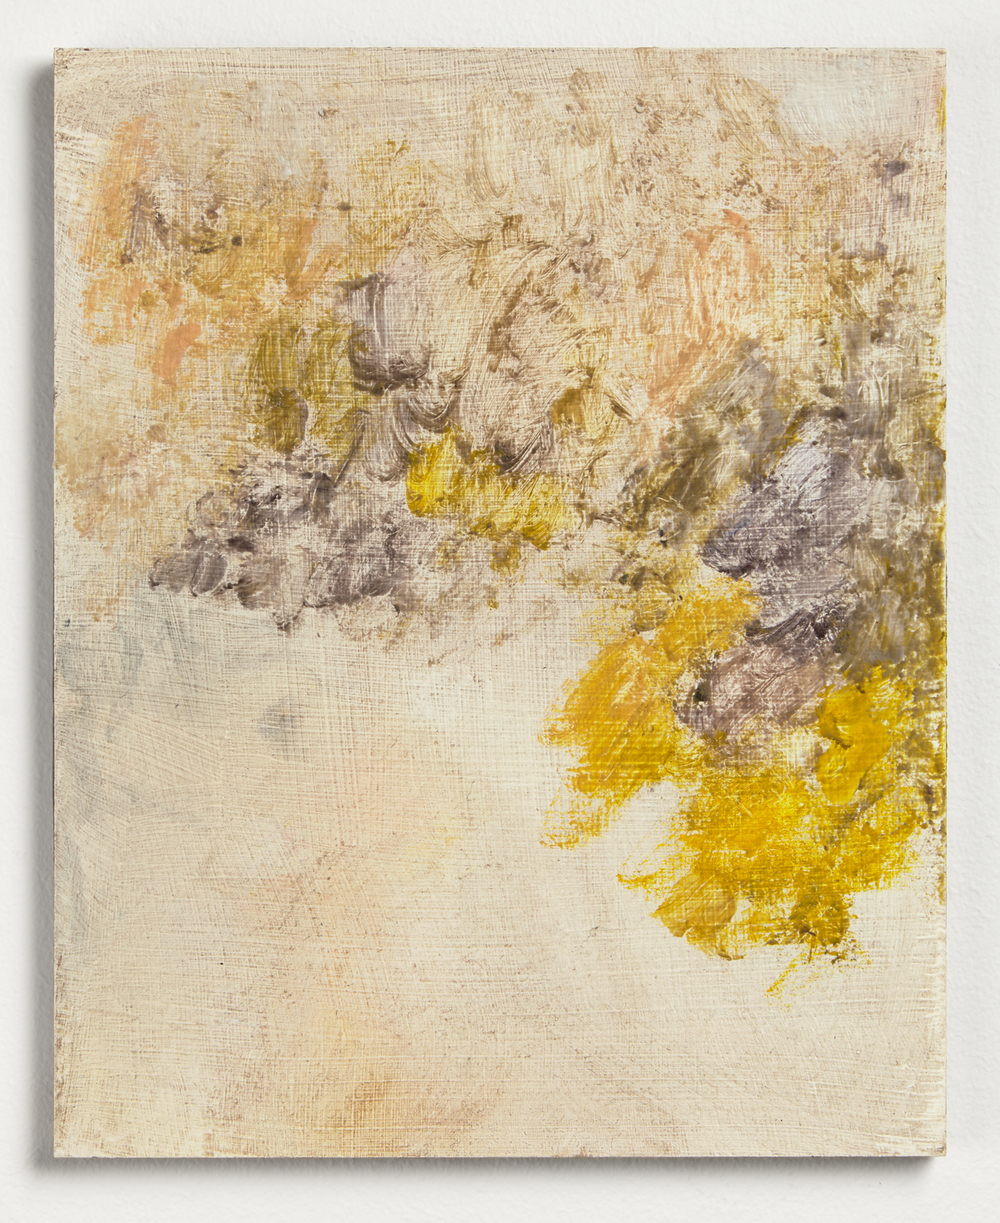 Wattle  2015  Pigment and beeswax on gessoed MDF  25 x 20cm  NZD $450   Enquire